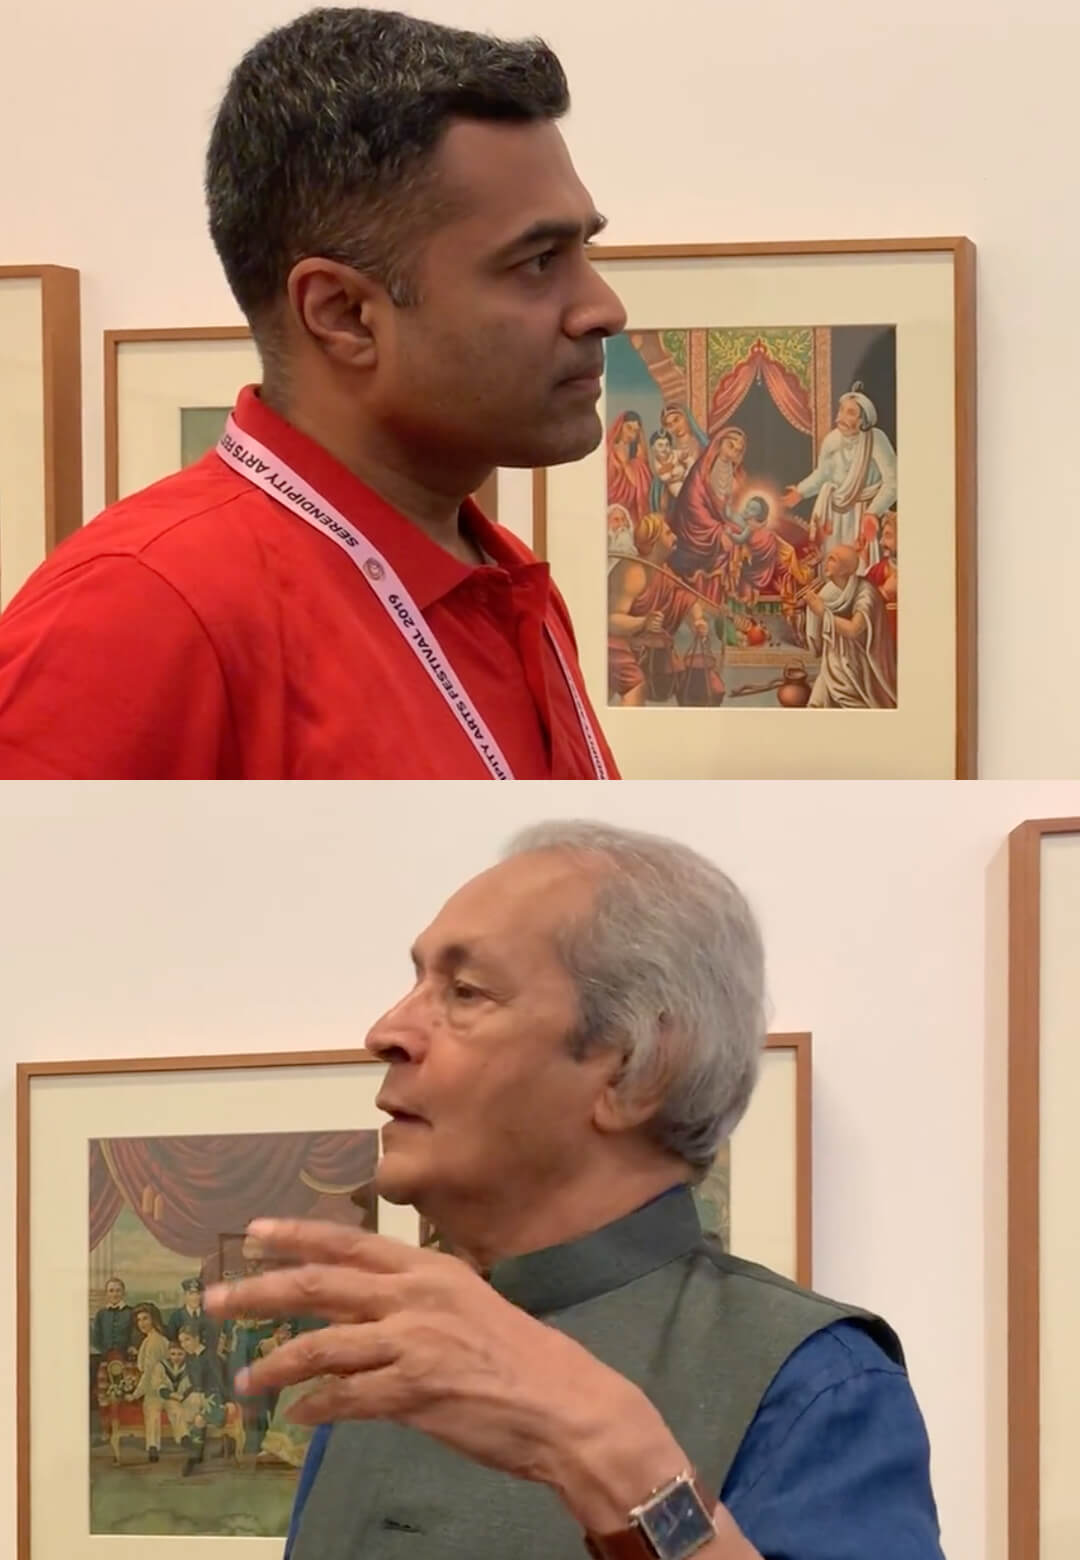 STIRring conversations at SAF'19 (Part 2) | Image Journey | Serendipity Arts Festival 2019 | Jyotindra Jain| STIRworld